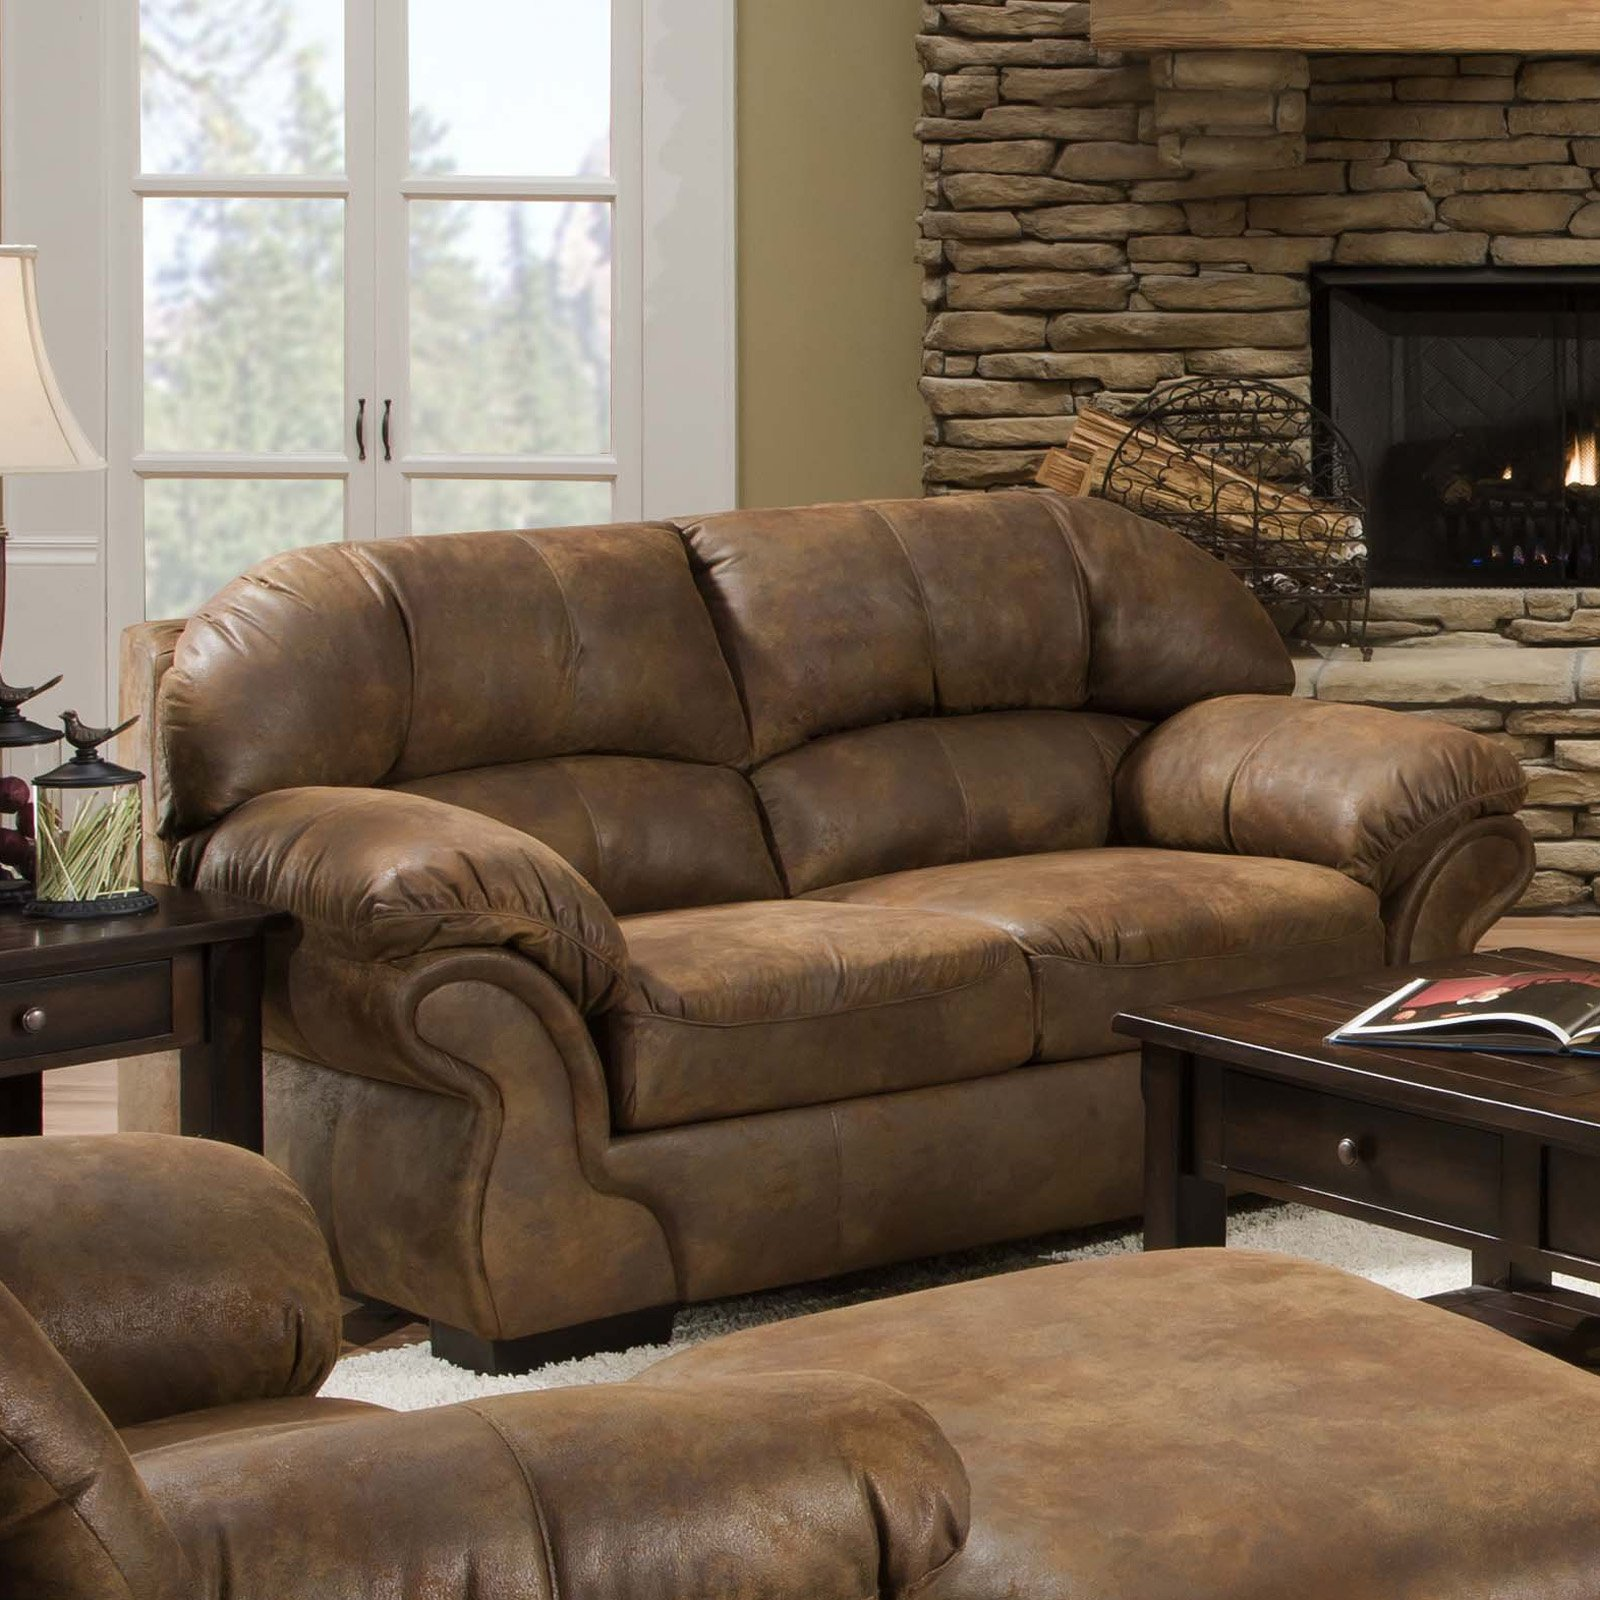 Simmons Pinto Tobacco Leather Loveseat   Walmart.com